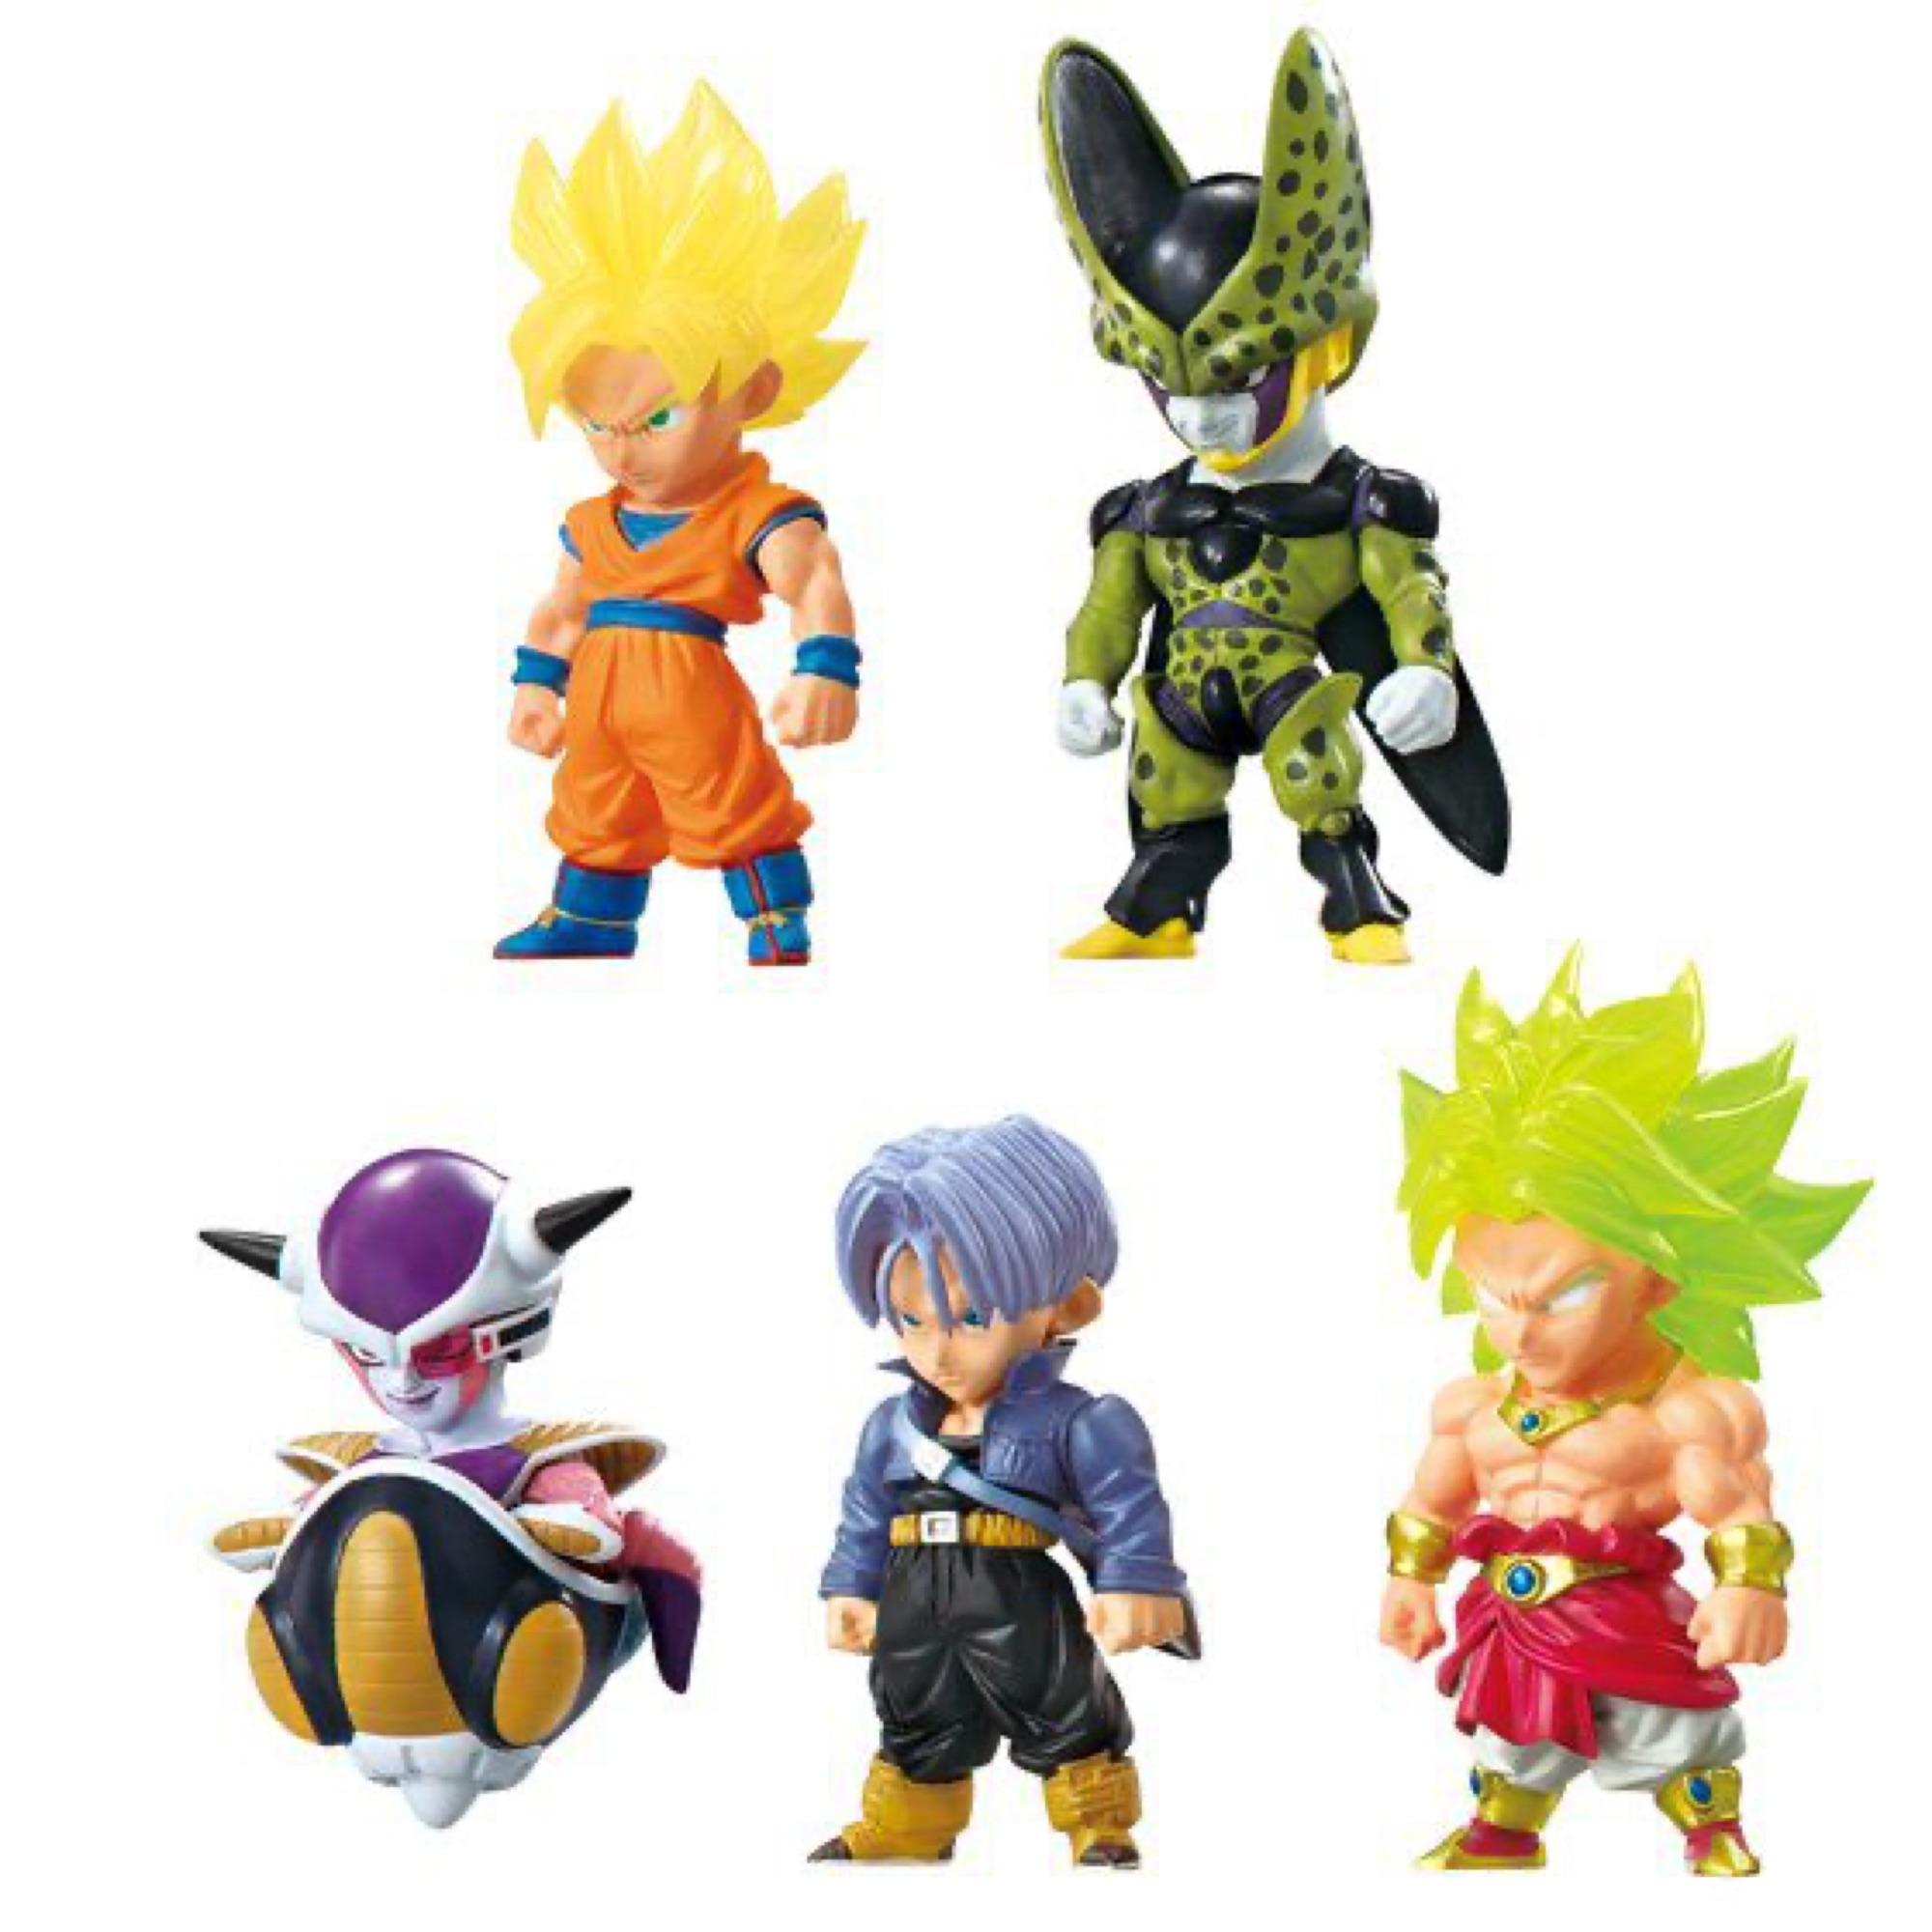 DRAGON BALL ADVERGE #1 DISPLAY 10 MINI FIGURAS 5,5 CM DRAGON BALL Z